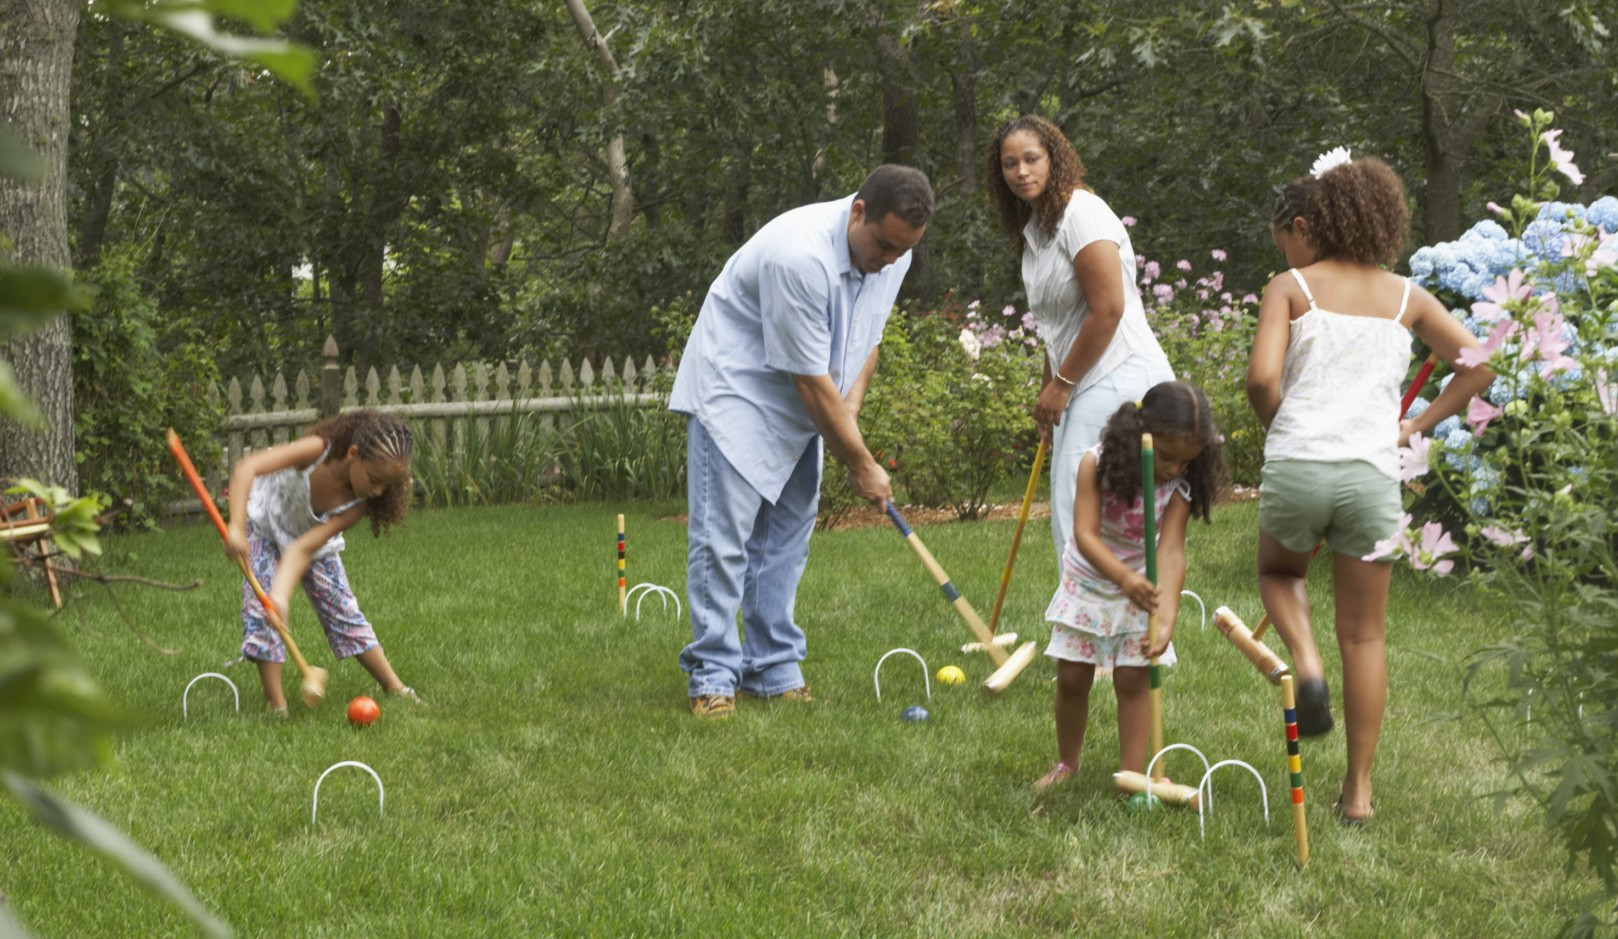 Funny Backyard Games  16 Awesome Backyard Games for Kids & Adults